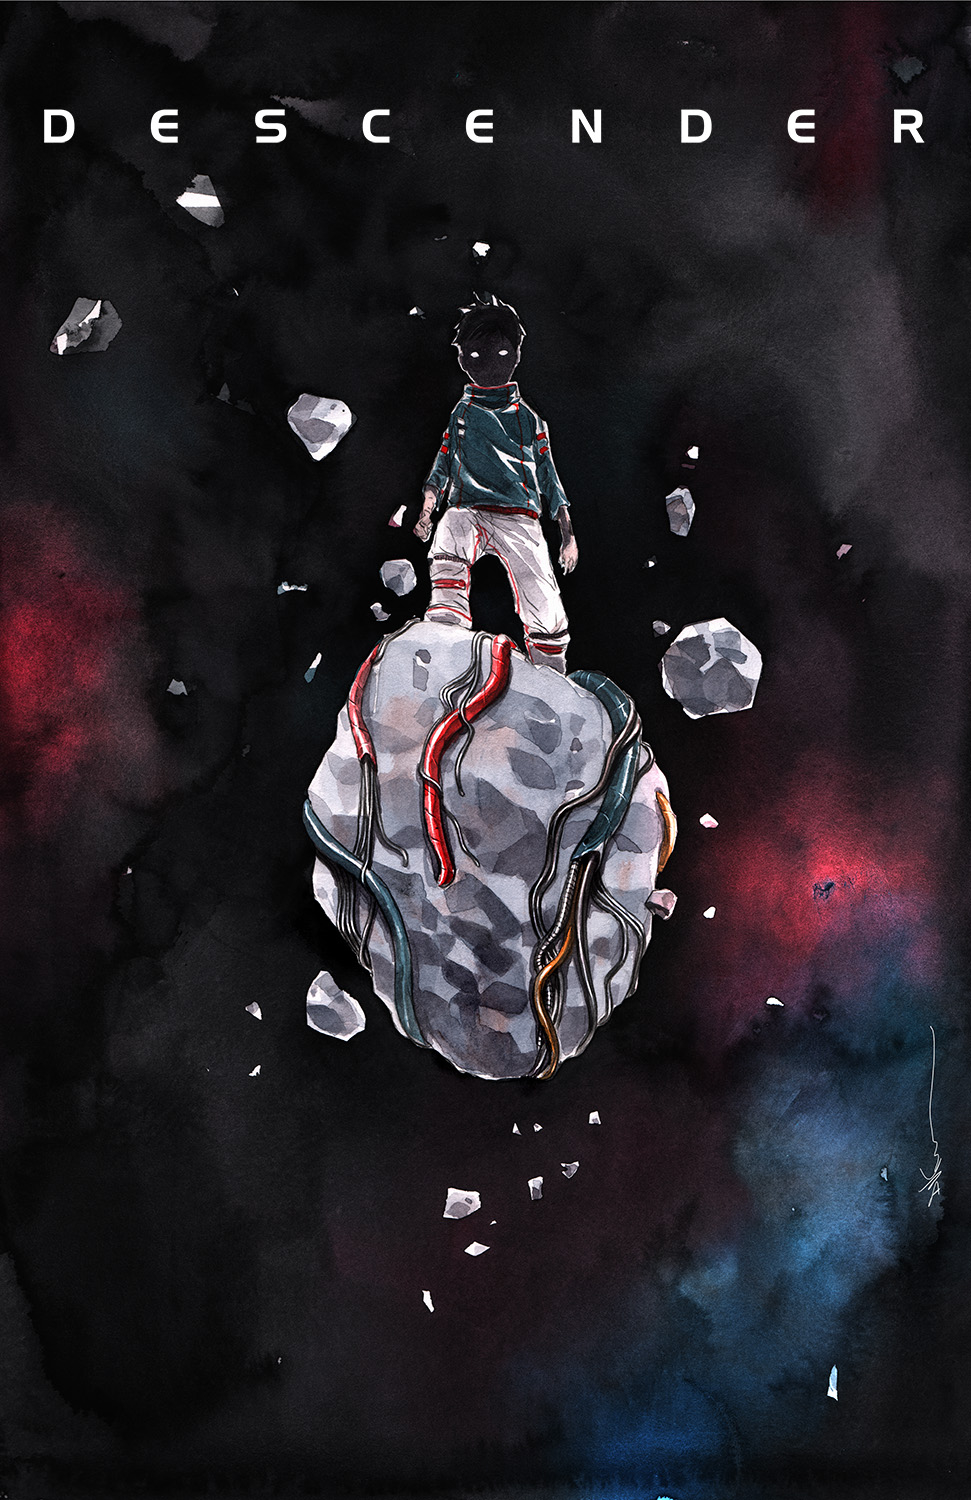 Descender Tp Vol 04 Orbital Mechanics (Mr) (STL038310)